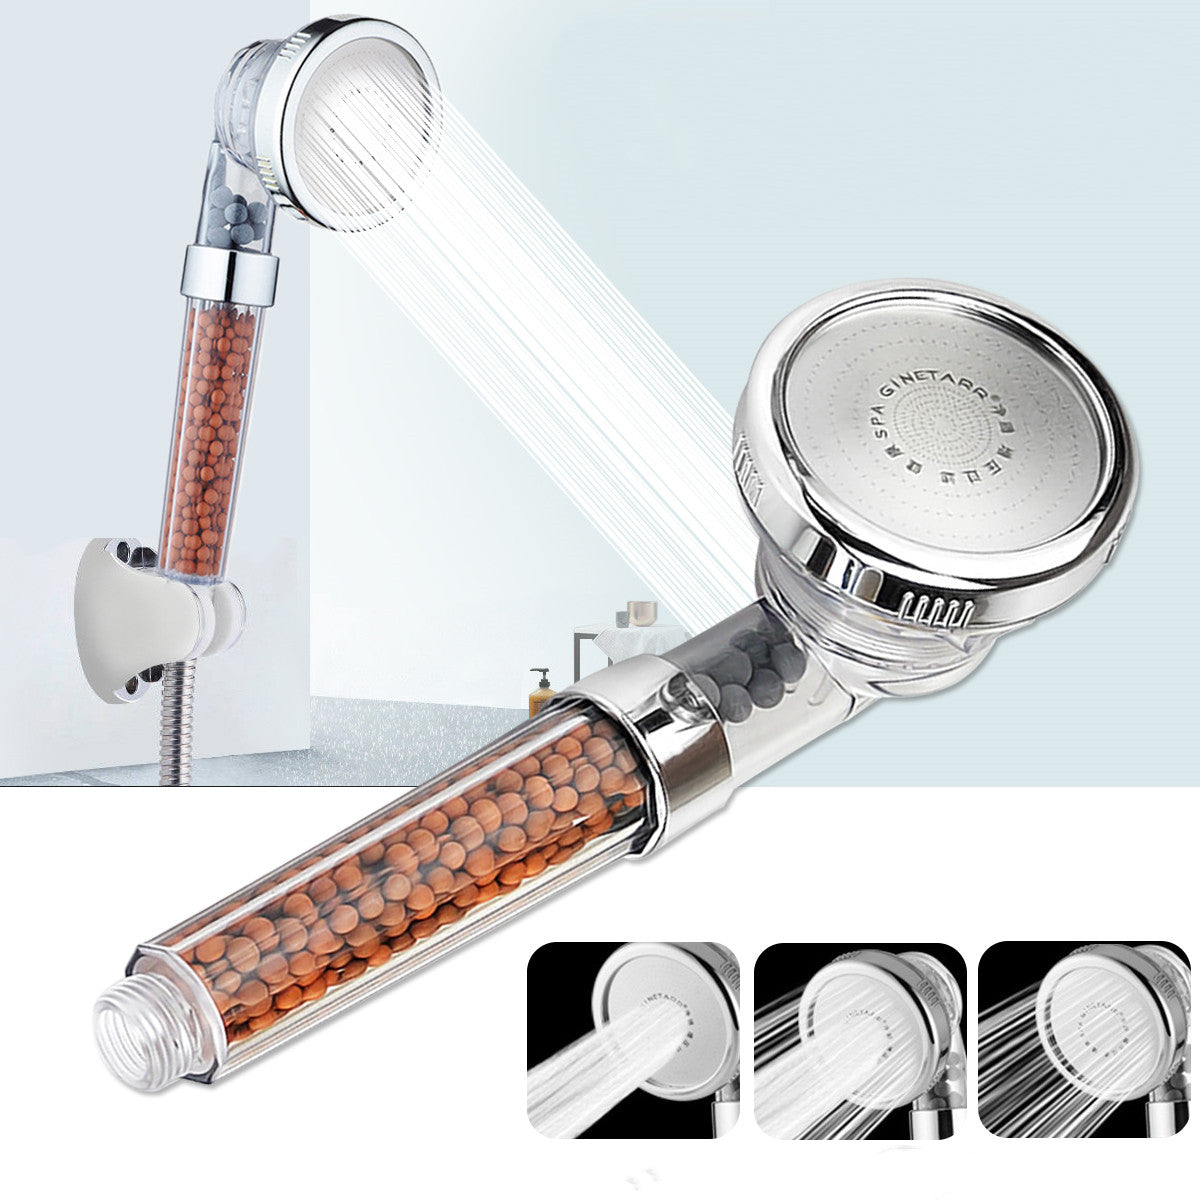 High Pressure Shower Head with 3 Modes; Handheld Adjustable Stone Stream Shower Head